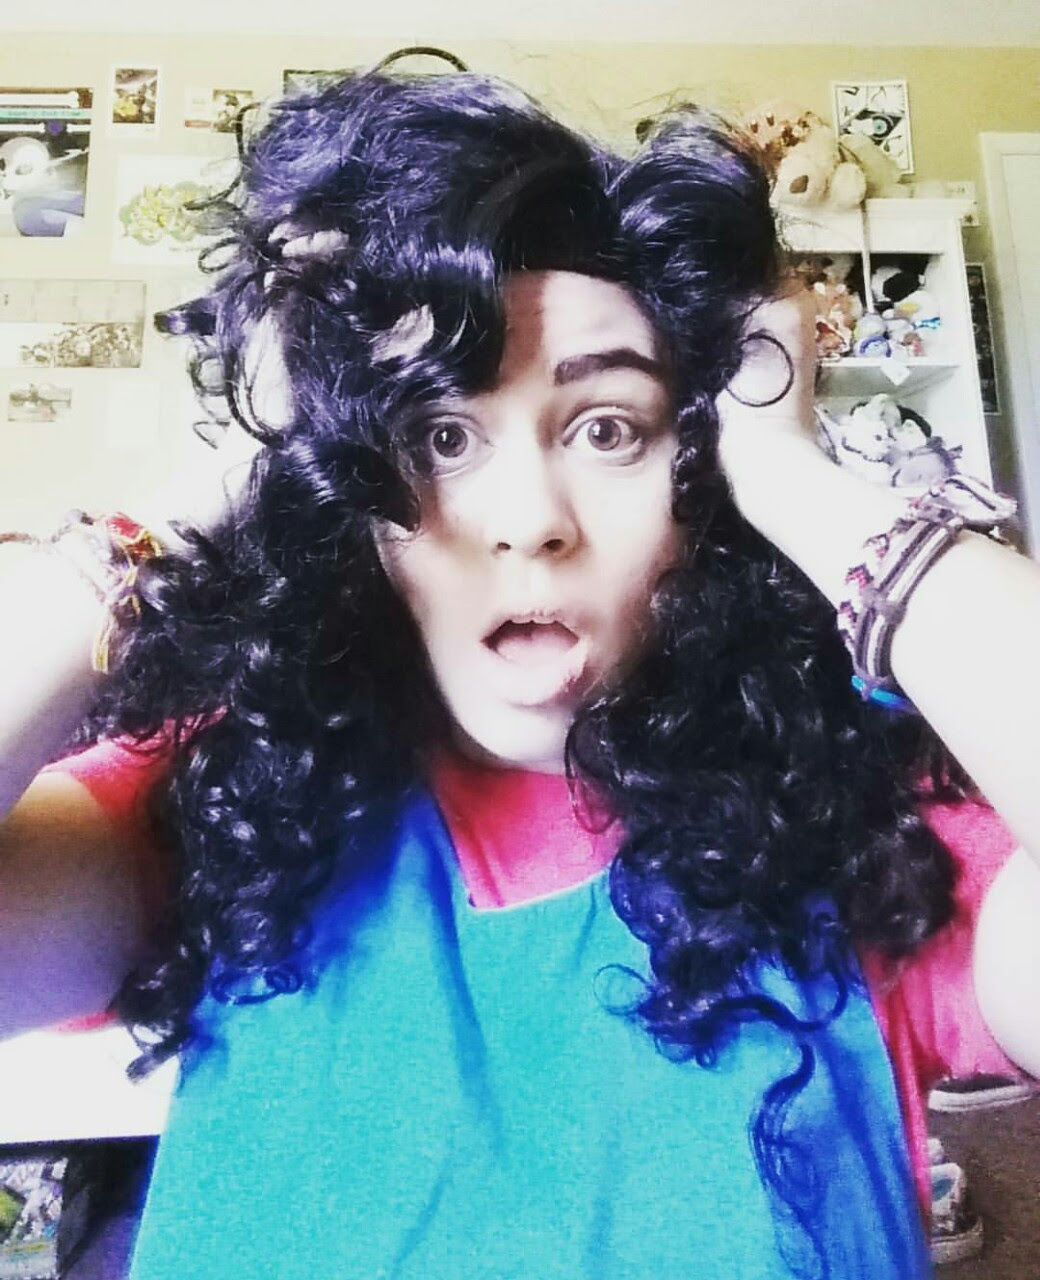 I think I am my happiest when I'm in Stevonnie cosplay.